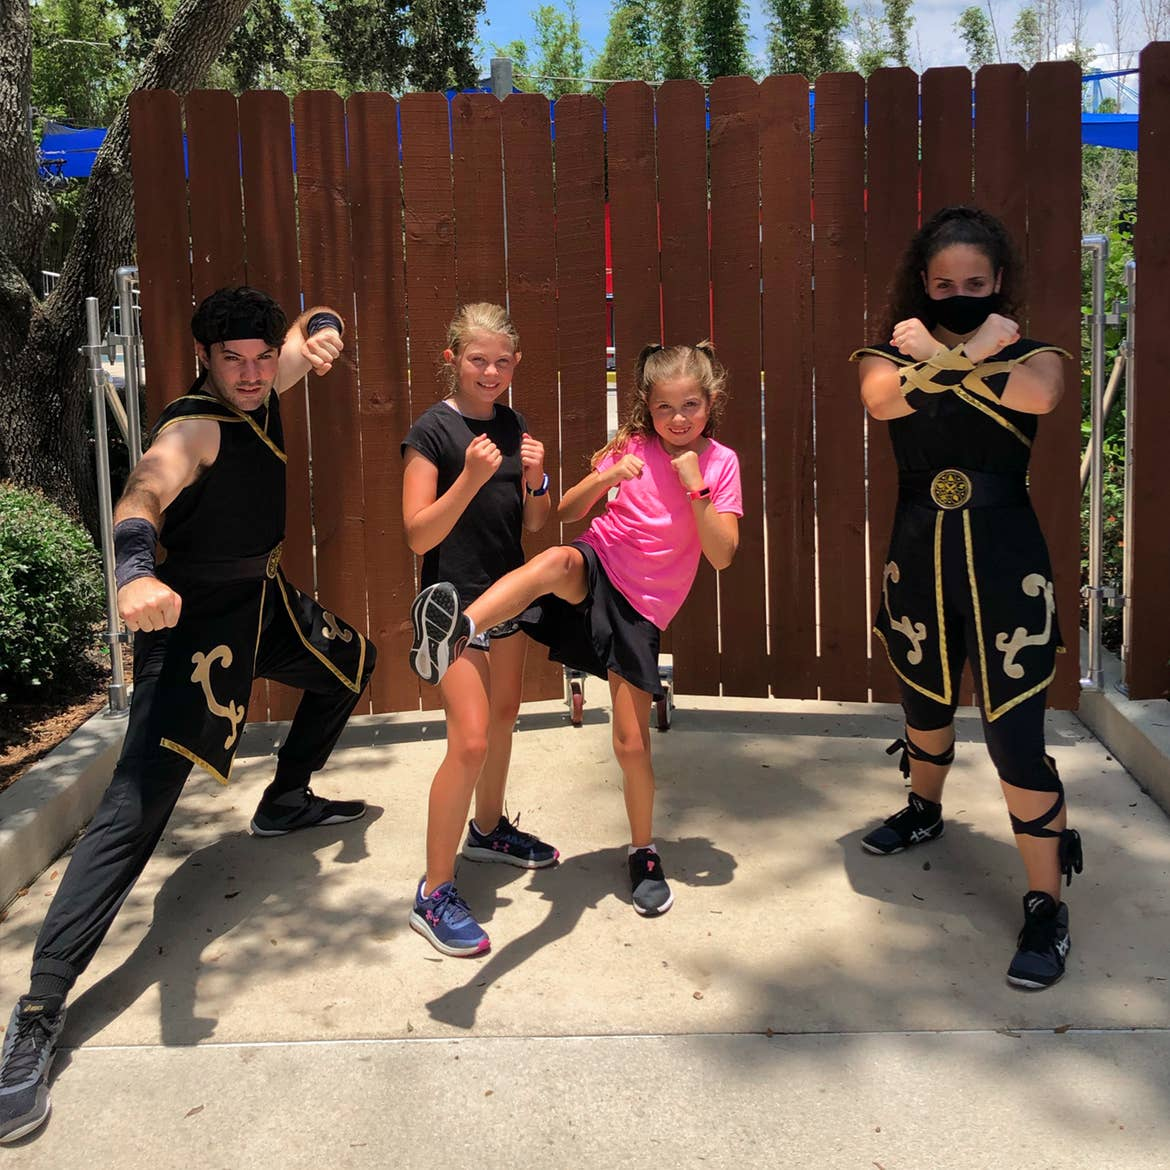 Two young girls (middle) pose with two performers dressed as ninjas.